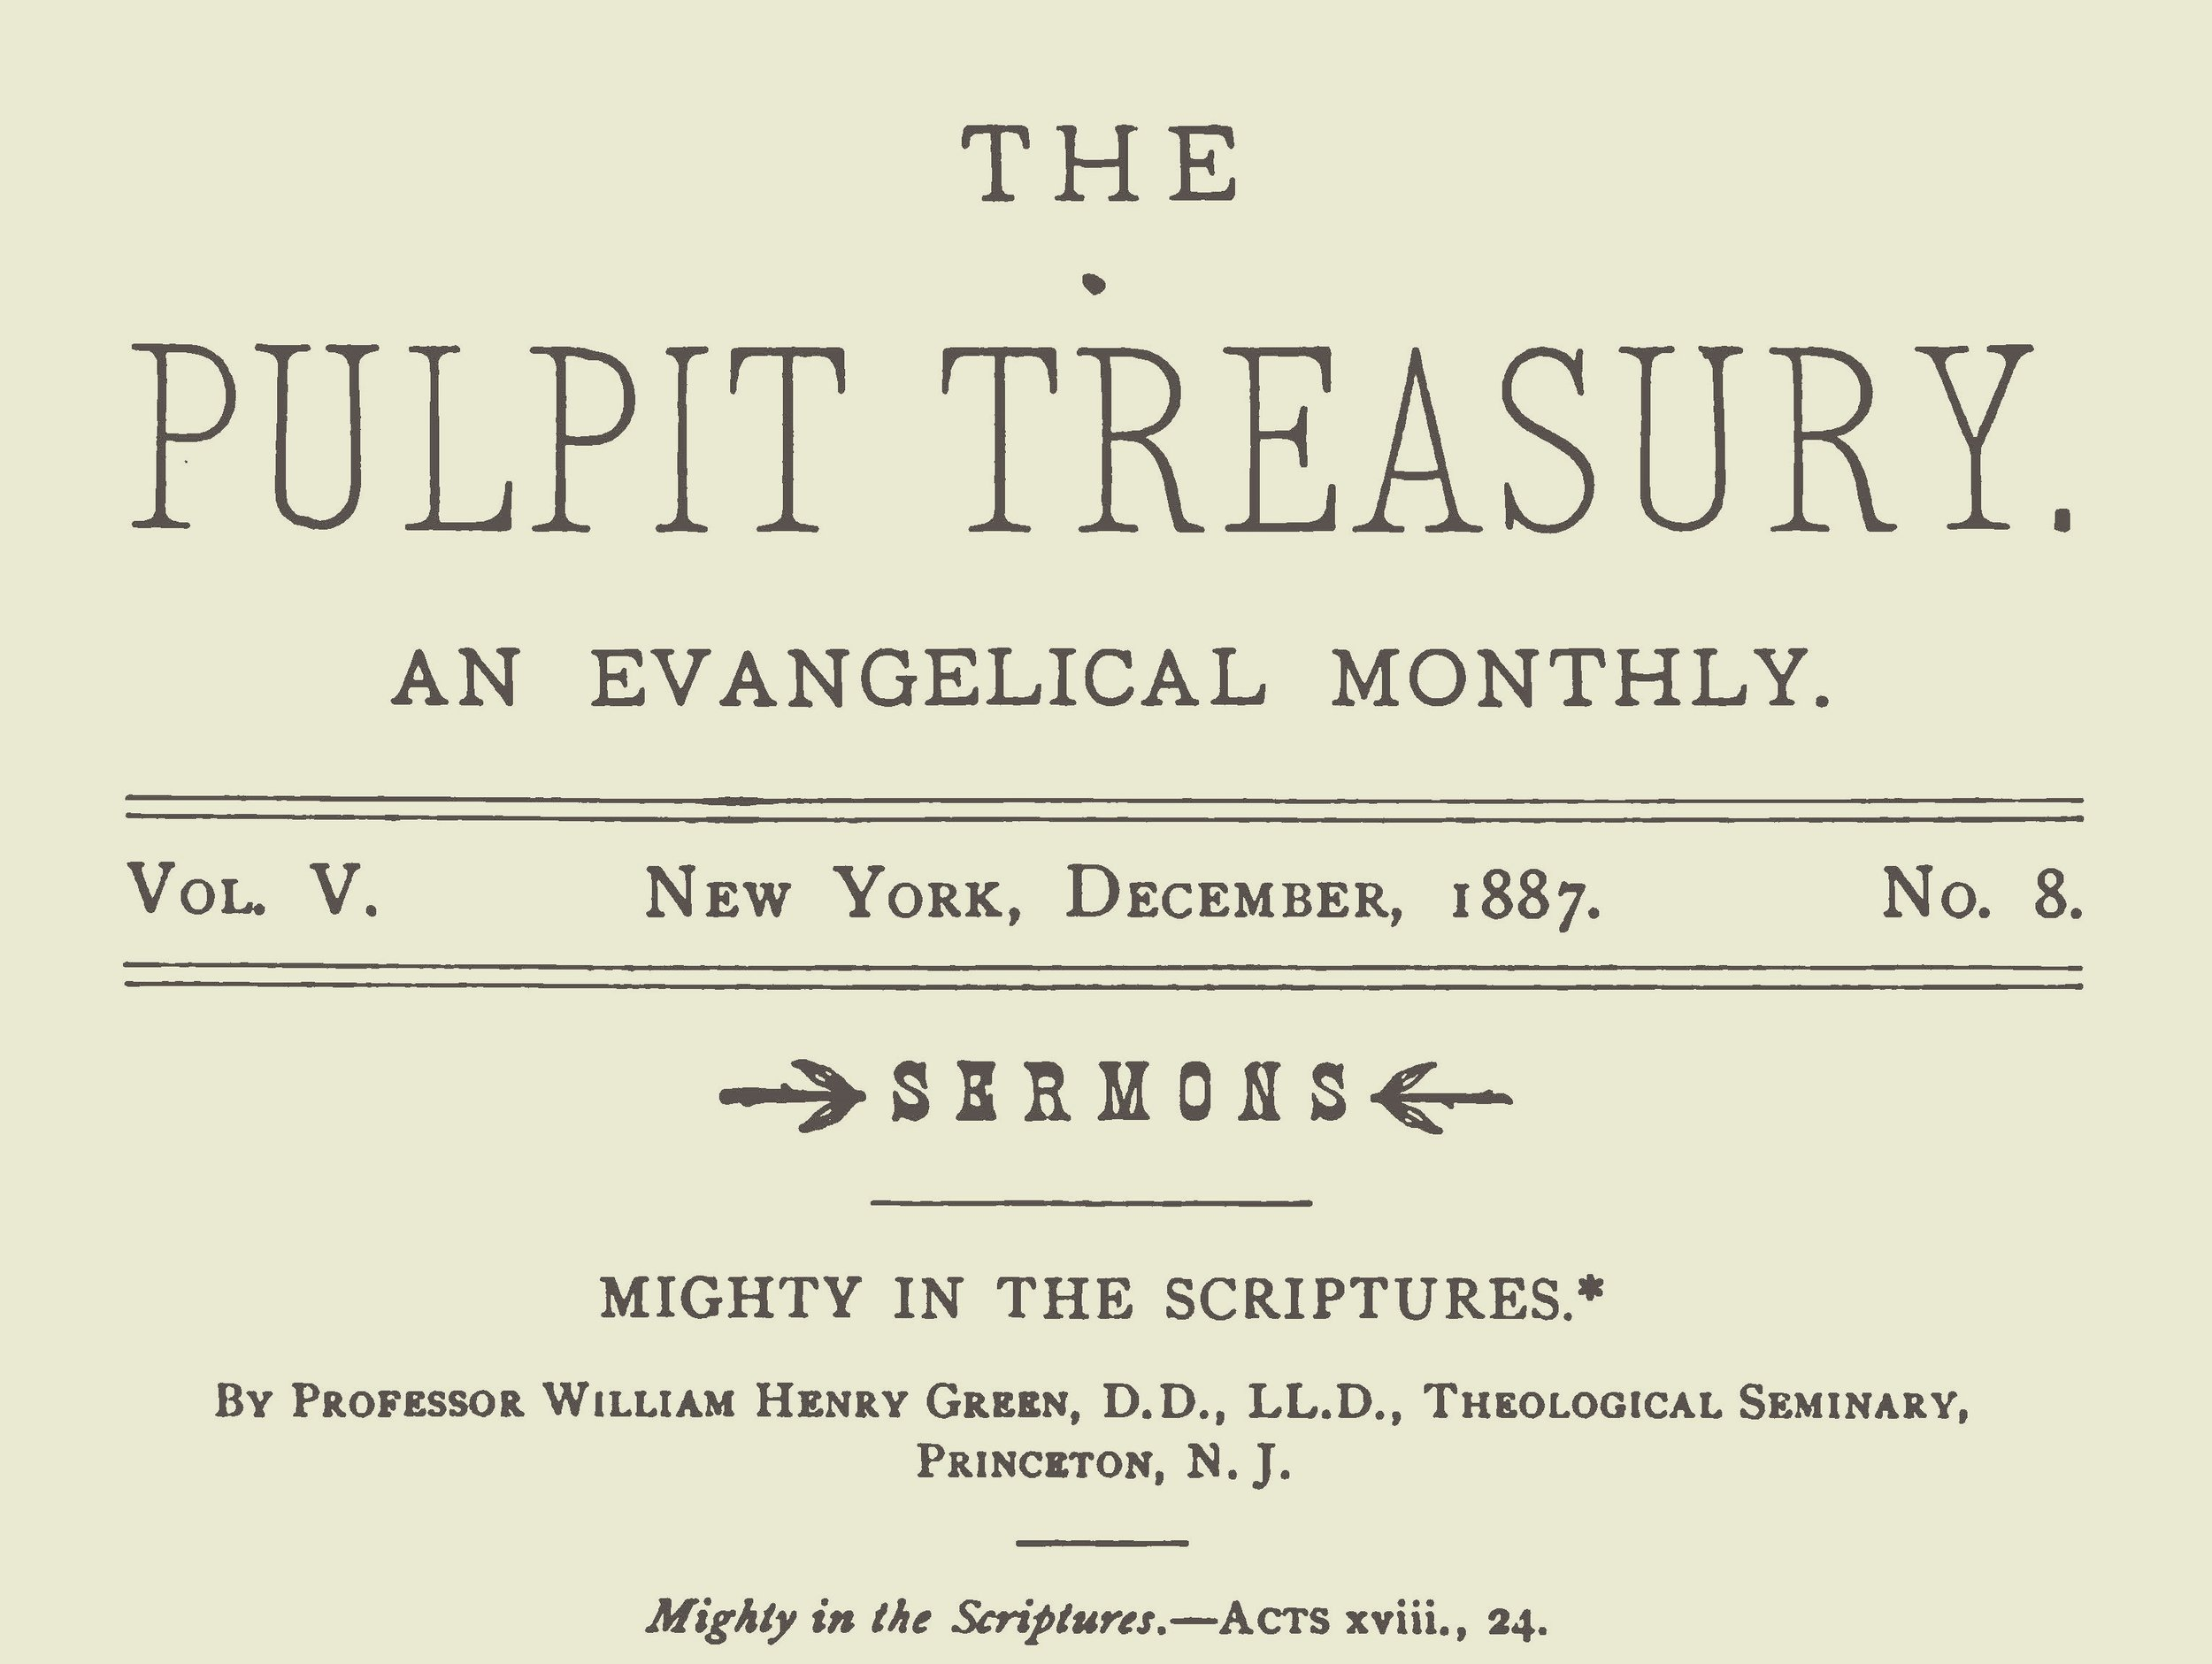 Green, William Henry, Mighty in the Scriptures Title Page.jpg